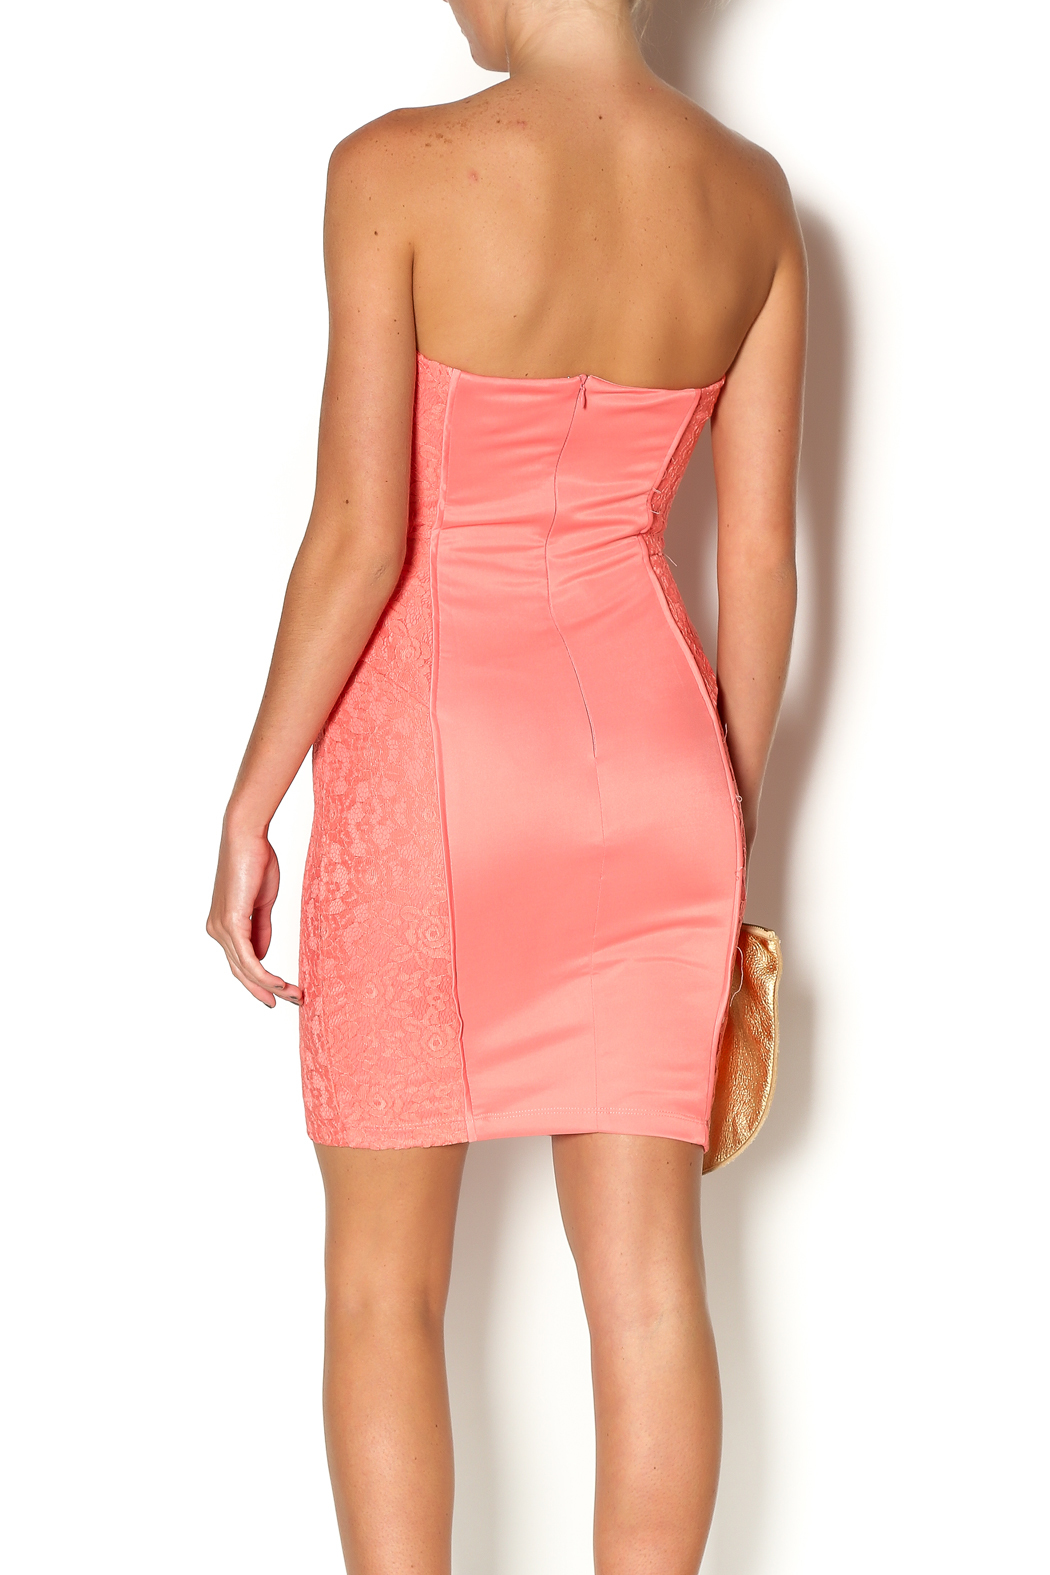 Abby & Taylor Strapless Coral Lace Dress - Back Cropped Image